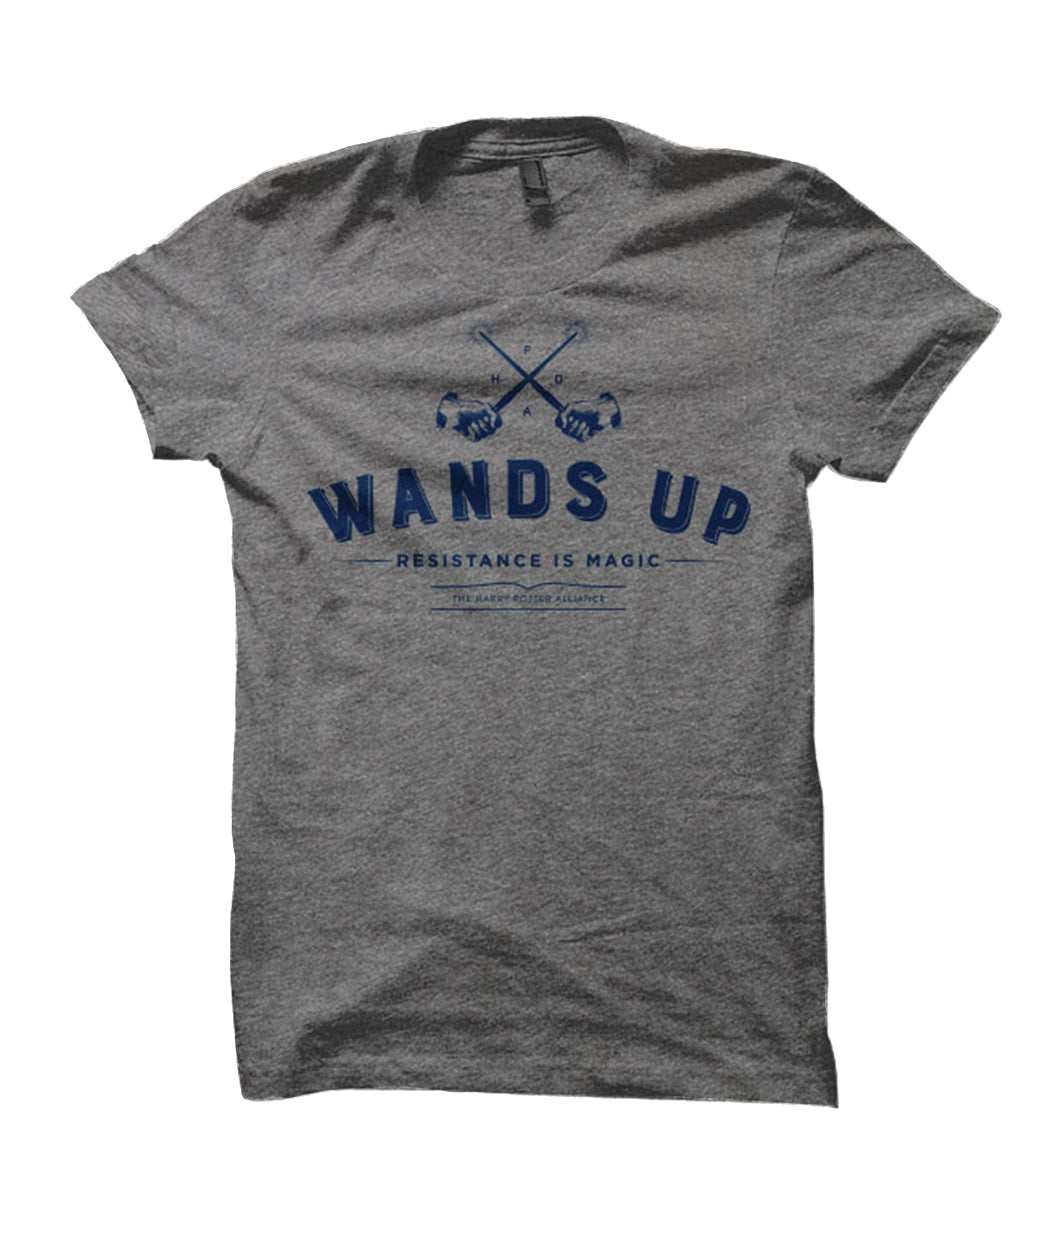 Wands Up T shirt Unisex